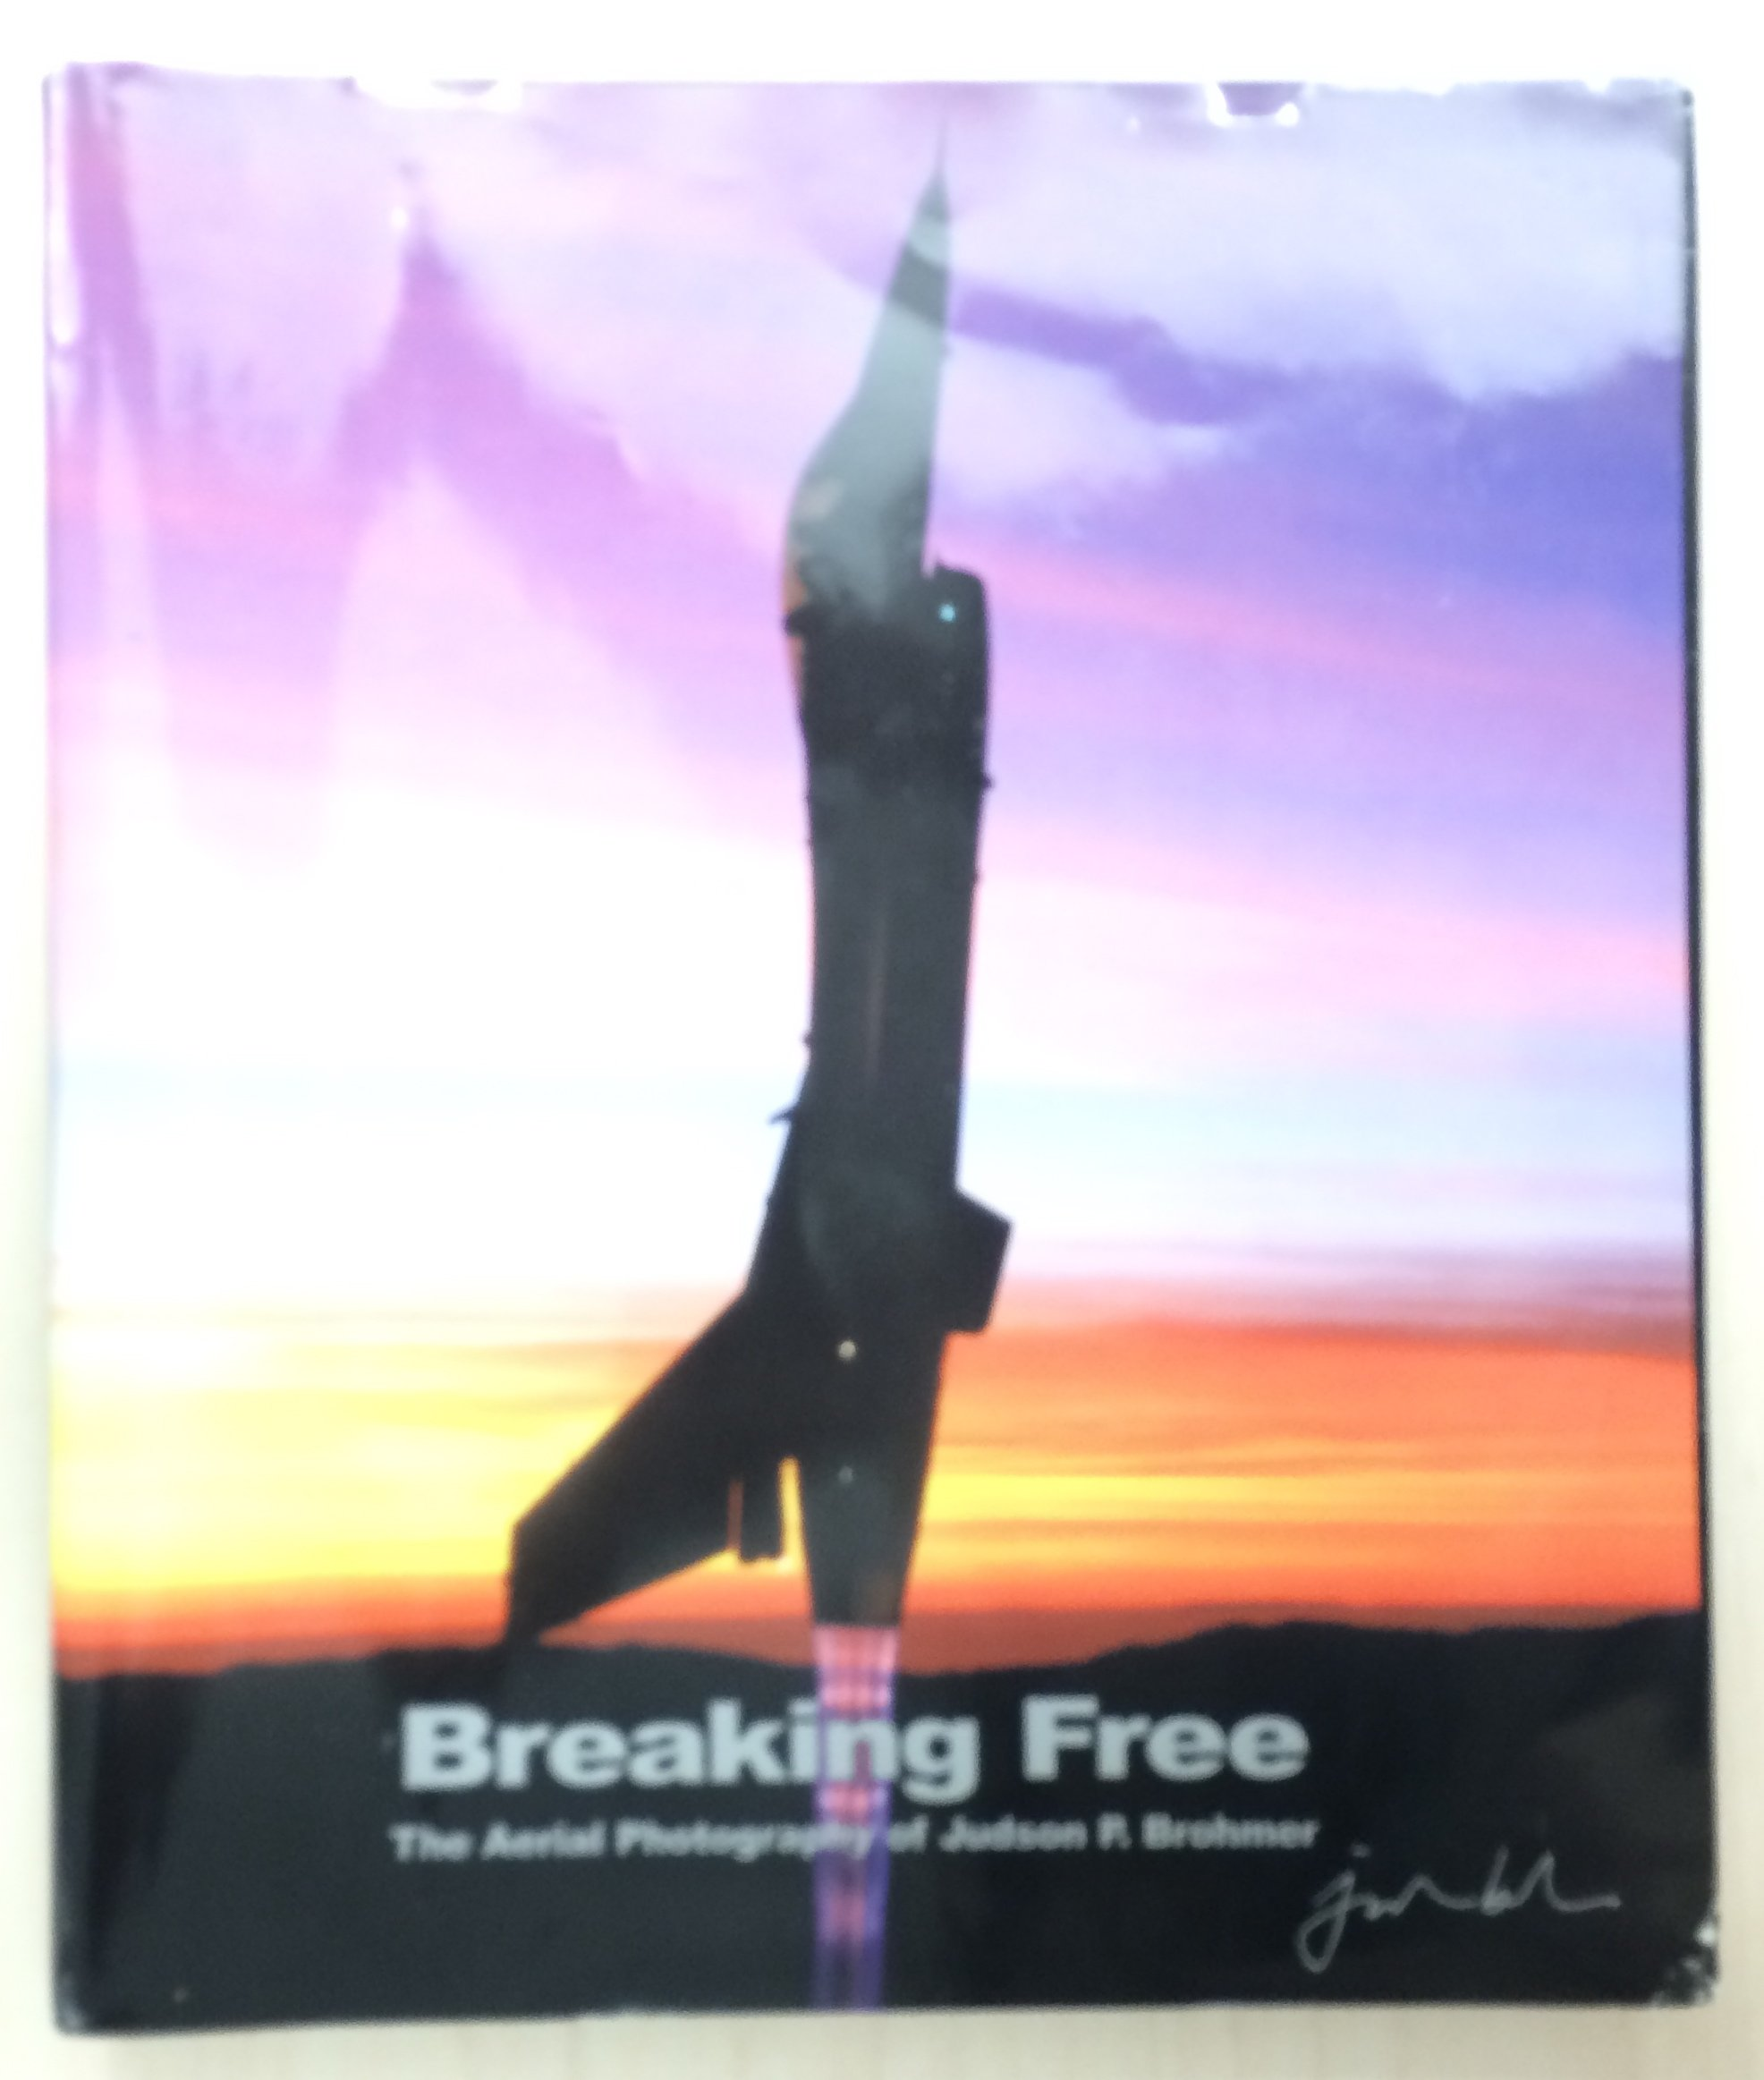 Breaking Free: The Aerial Photography of Judson P. Brohmer